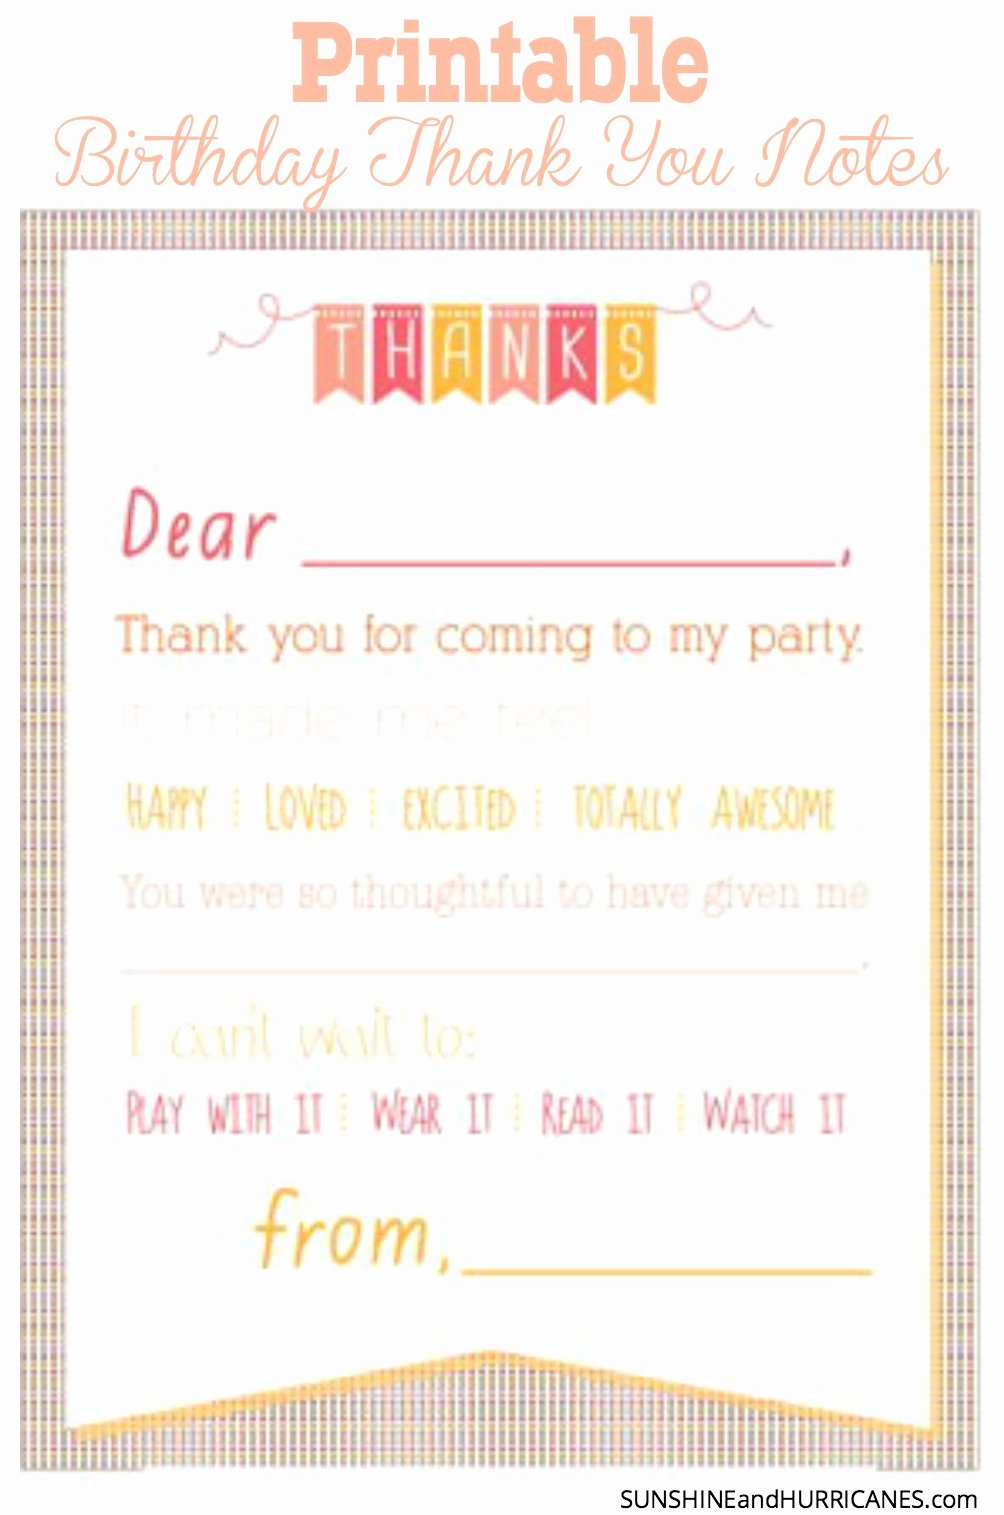 Sample Birthday Thank You Notes Lovely Printable Birthday Thank You Notes